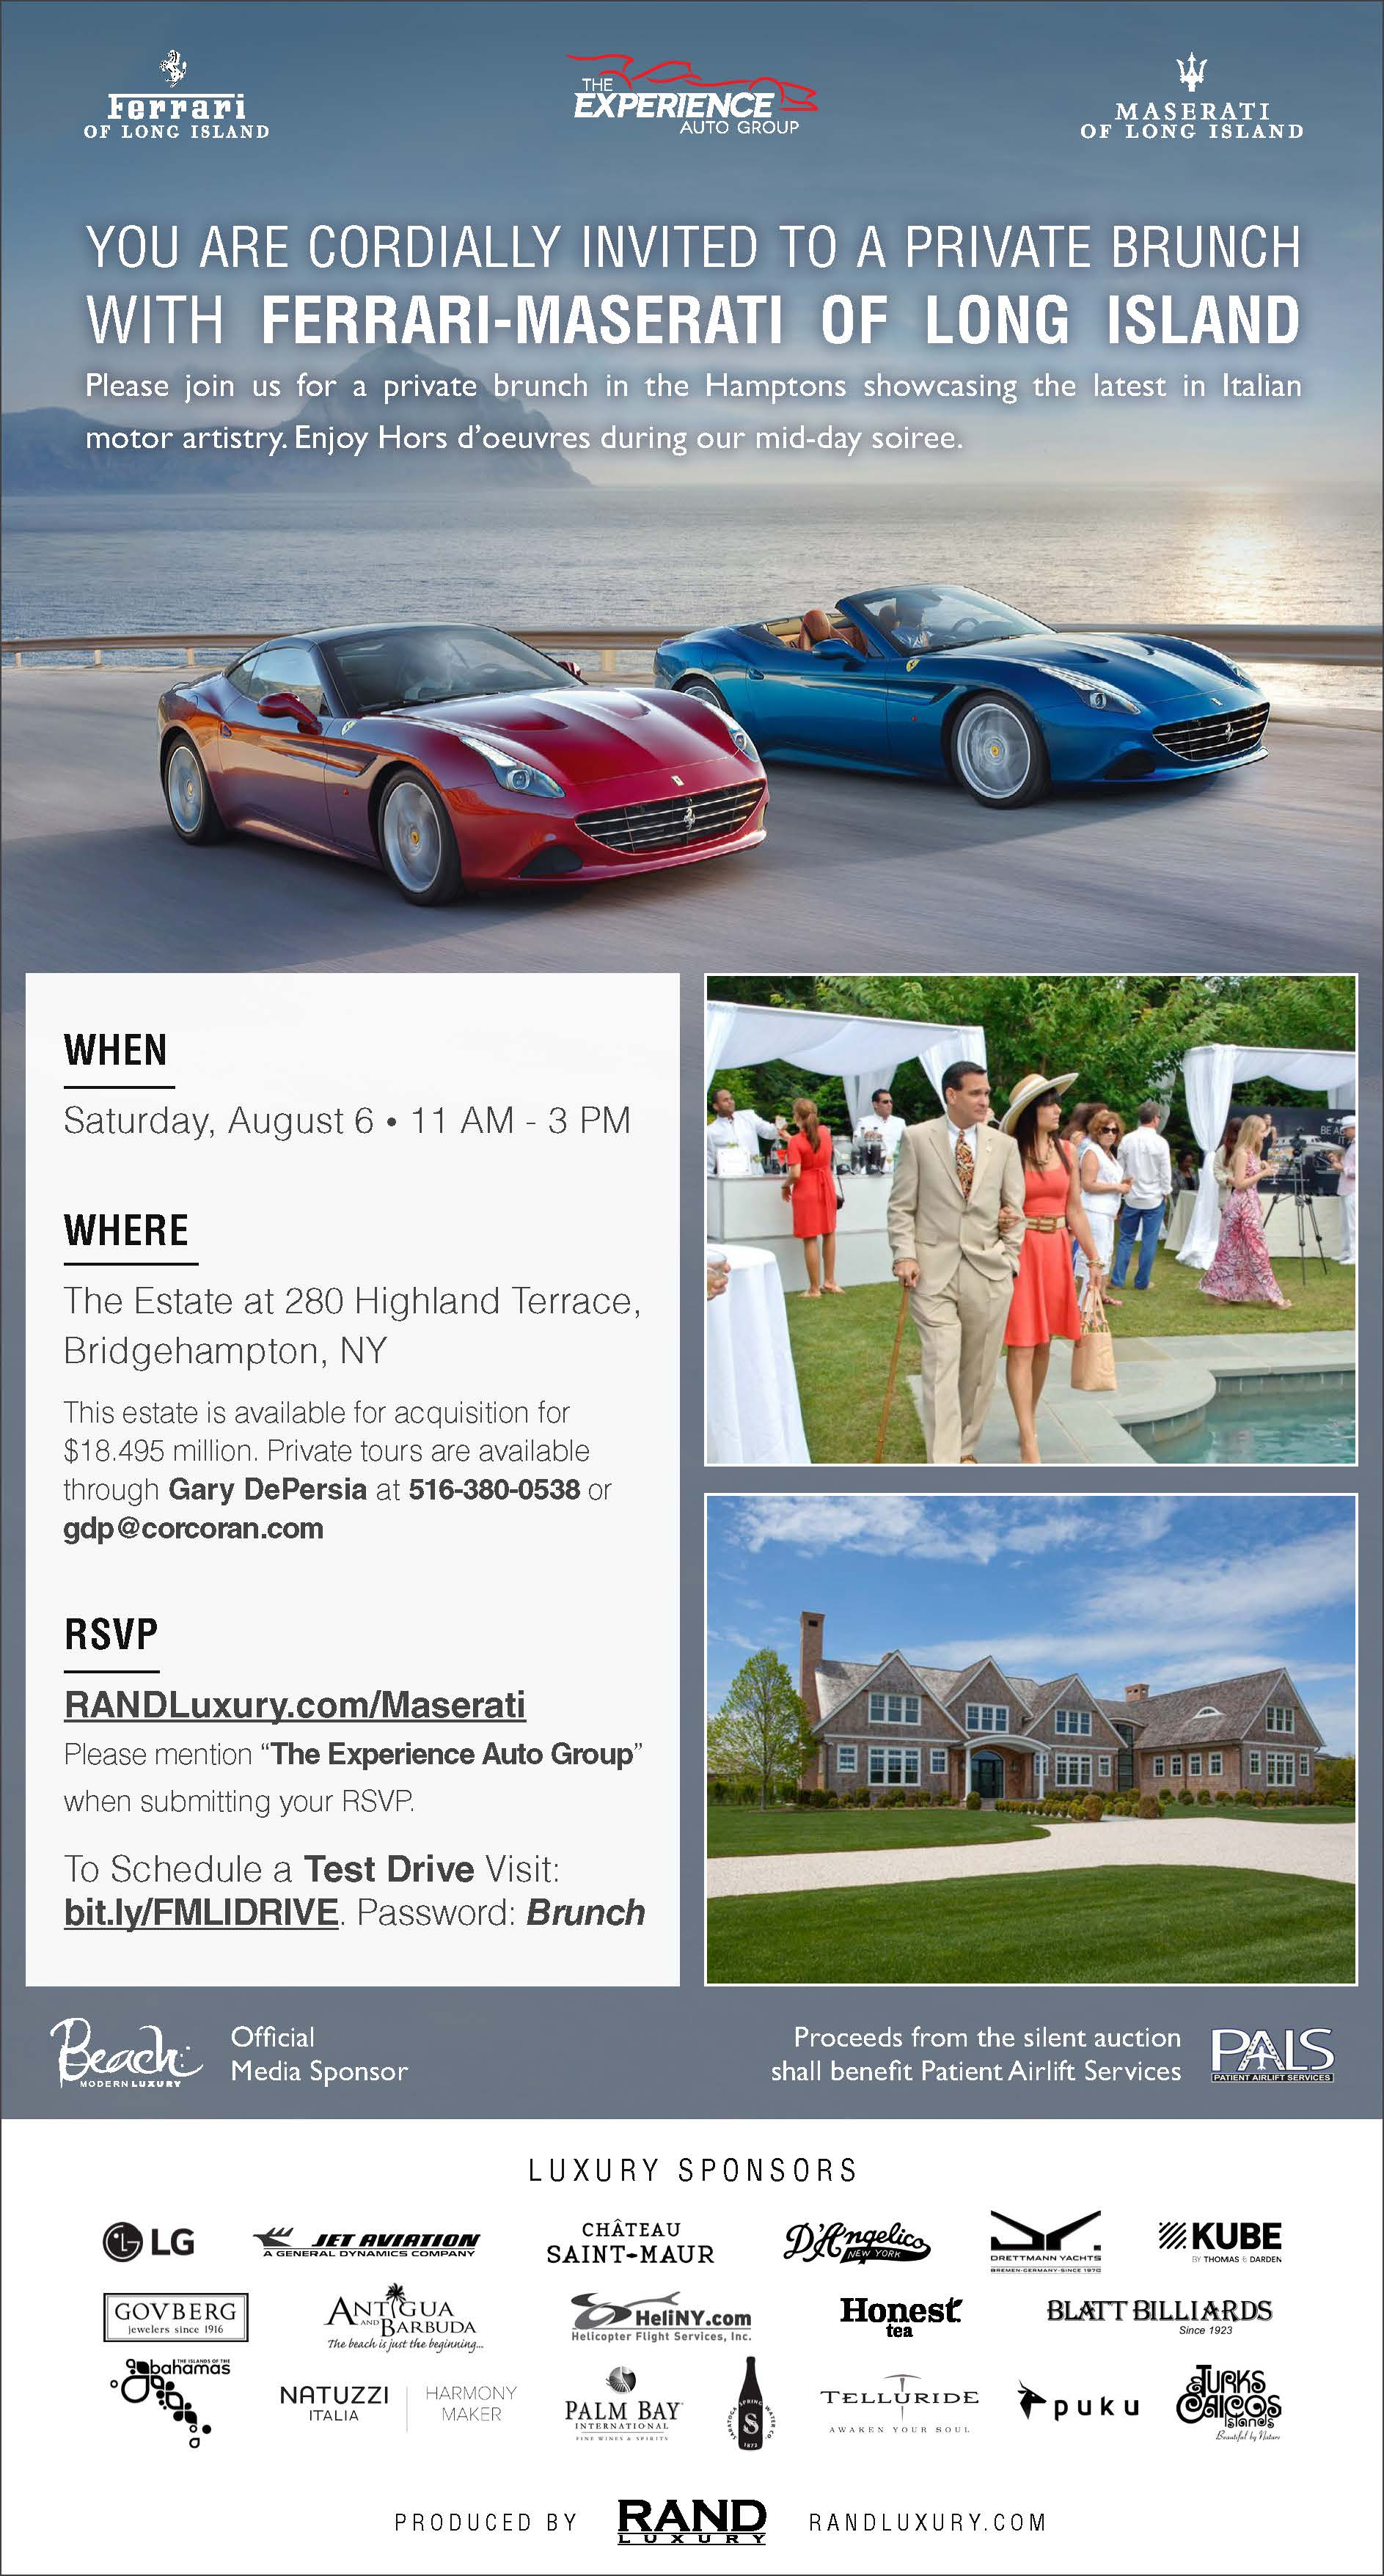 YOU ARE CORDIALLY INVITED TO A PRIVATE BRUNCH WITH FERRARI MASERATI OF LONG  ISLAND